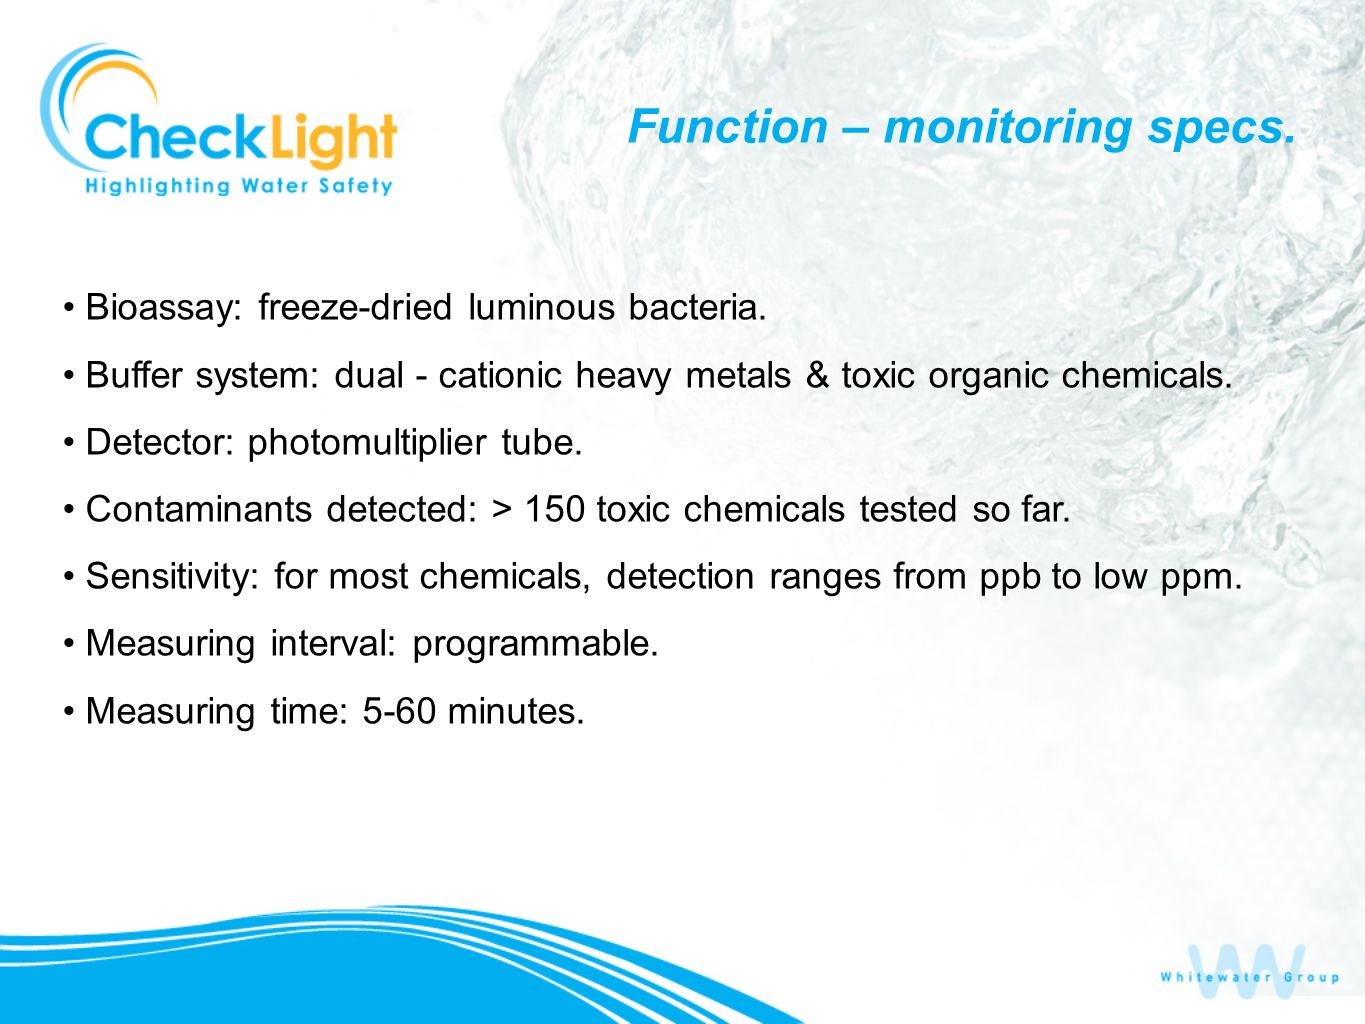 Function – monitoring specs. Bioassay: freeze-dried luminous bacteria. Buffer system: dual - cationic heavy metals & toxic organic chemicals. Detector